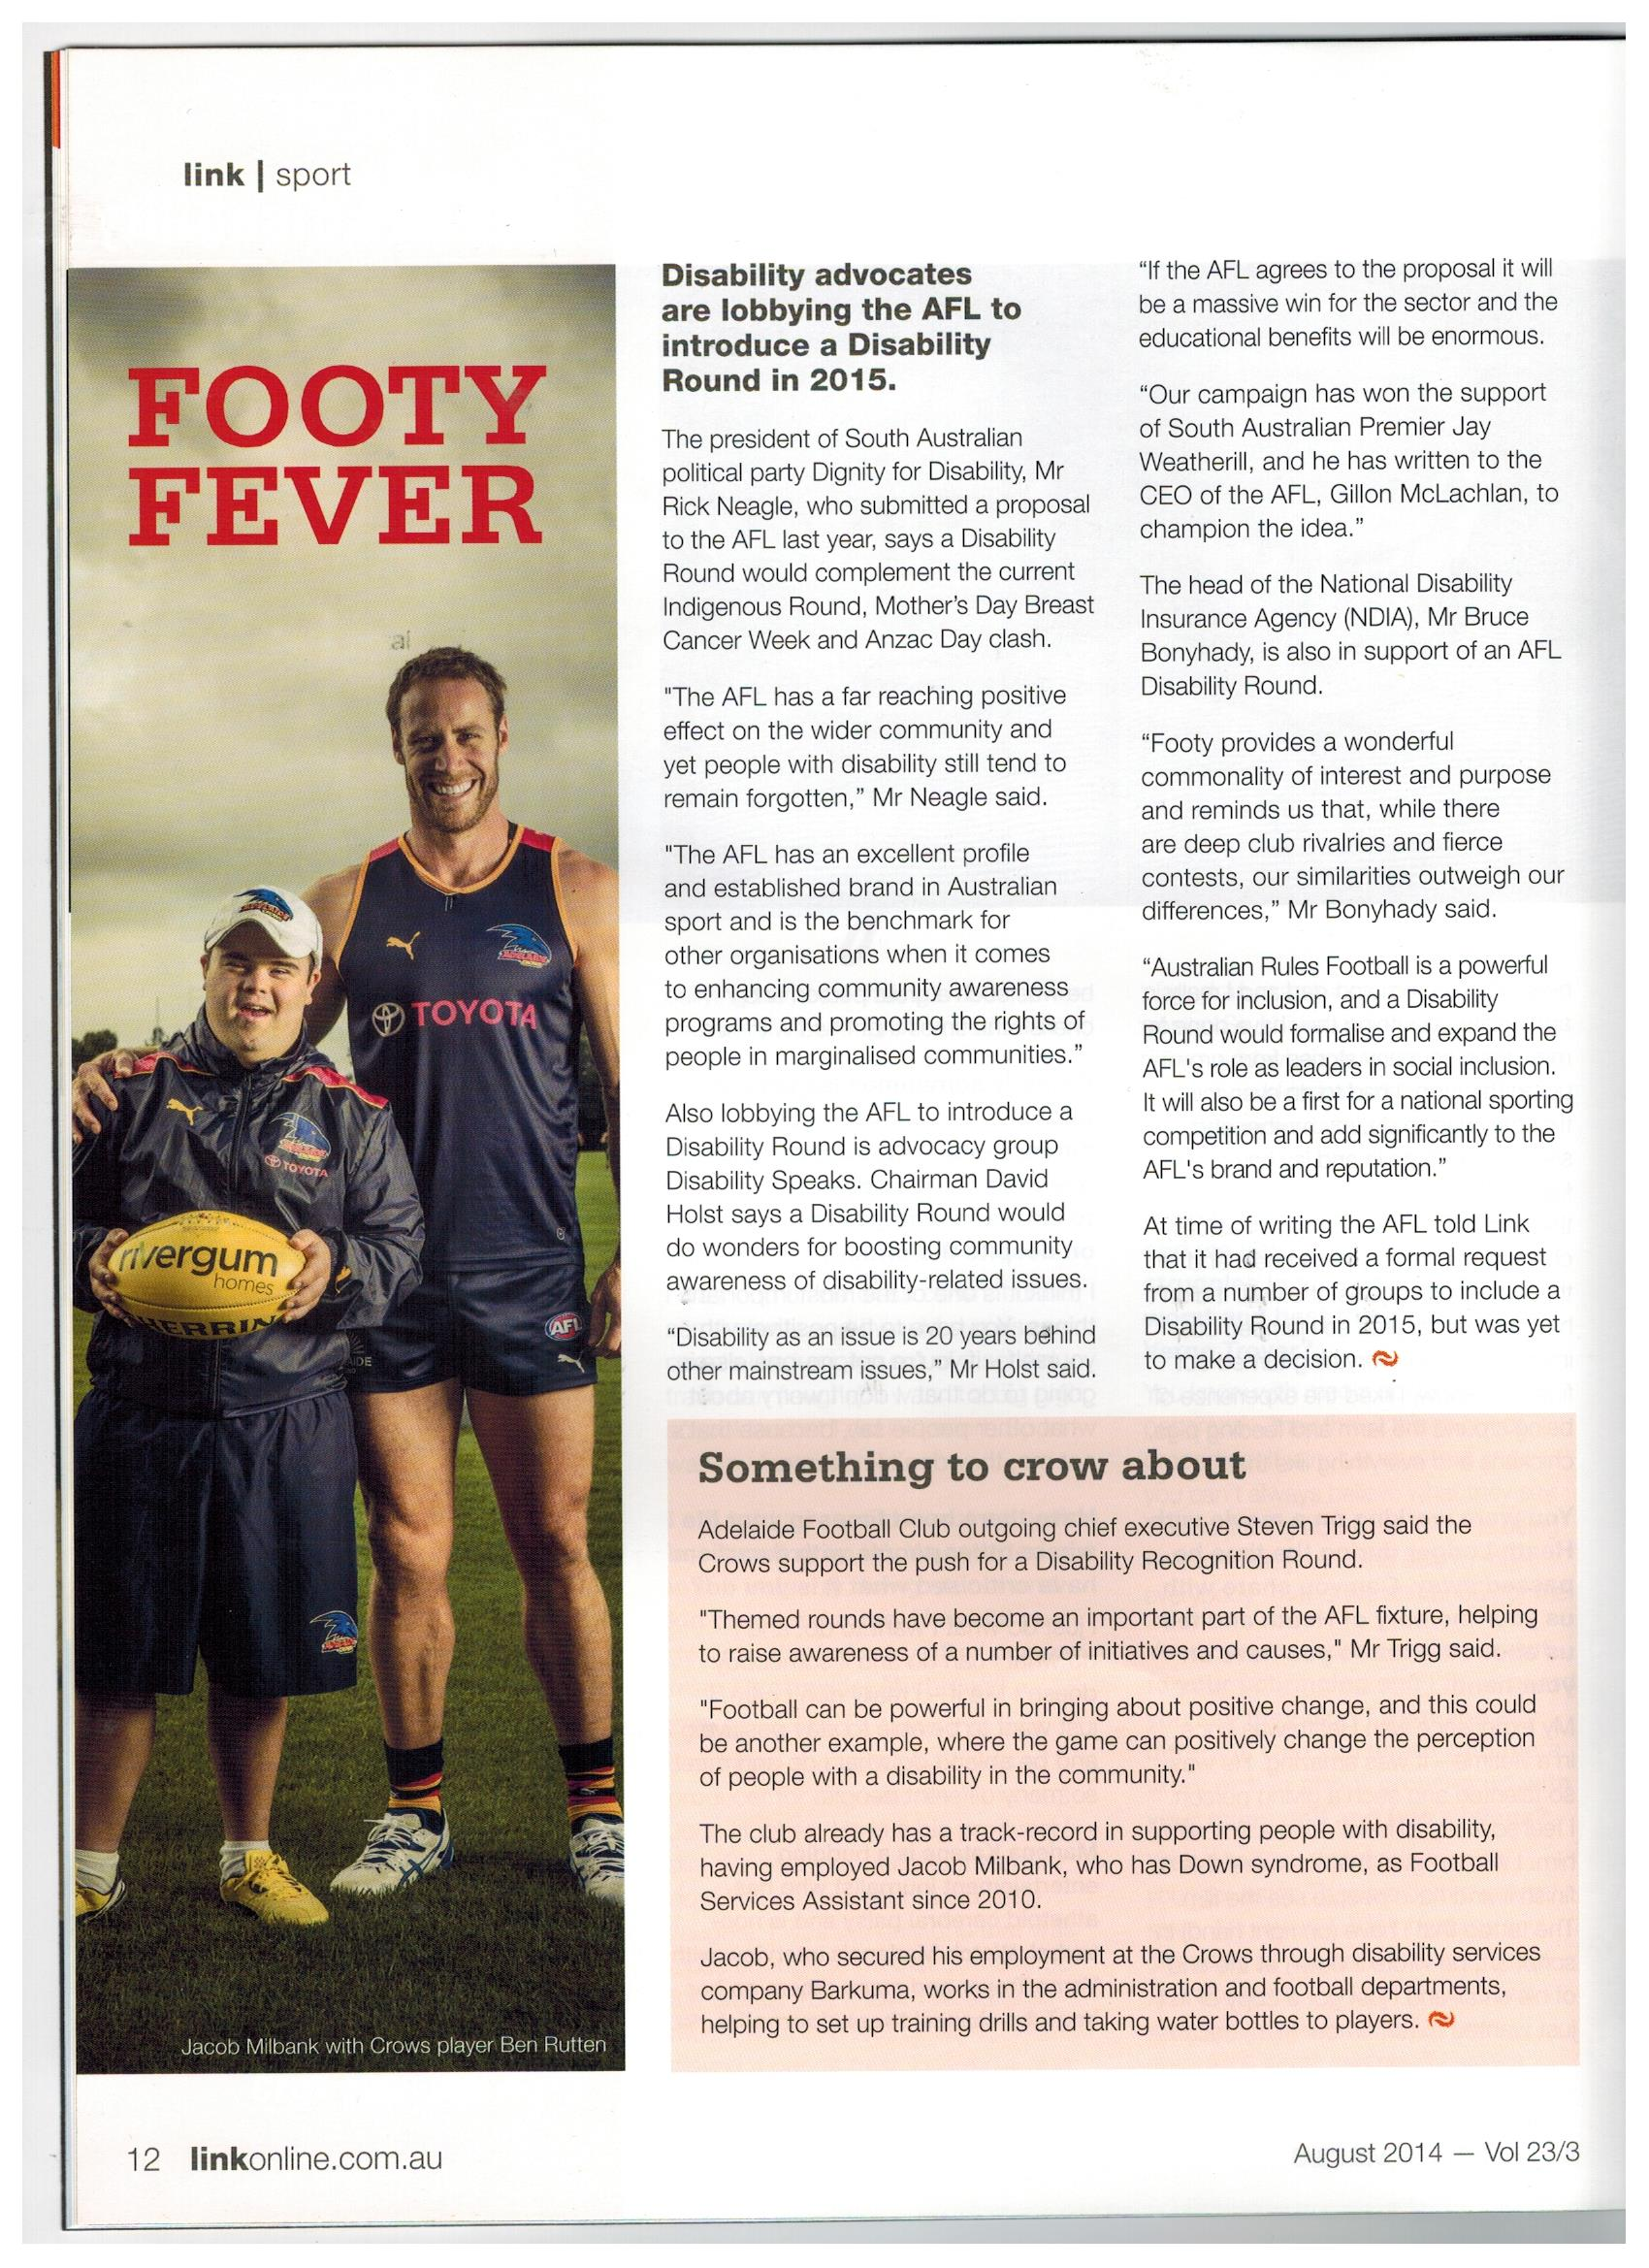 CMI_3 Crows - AFL Disability program 001.jpg